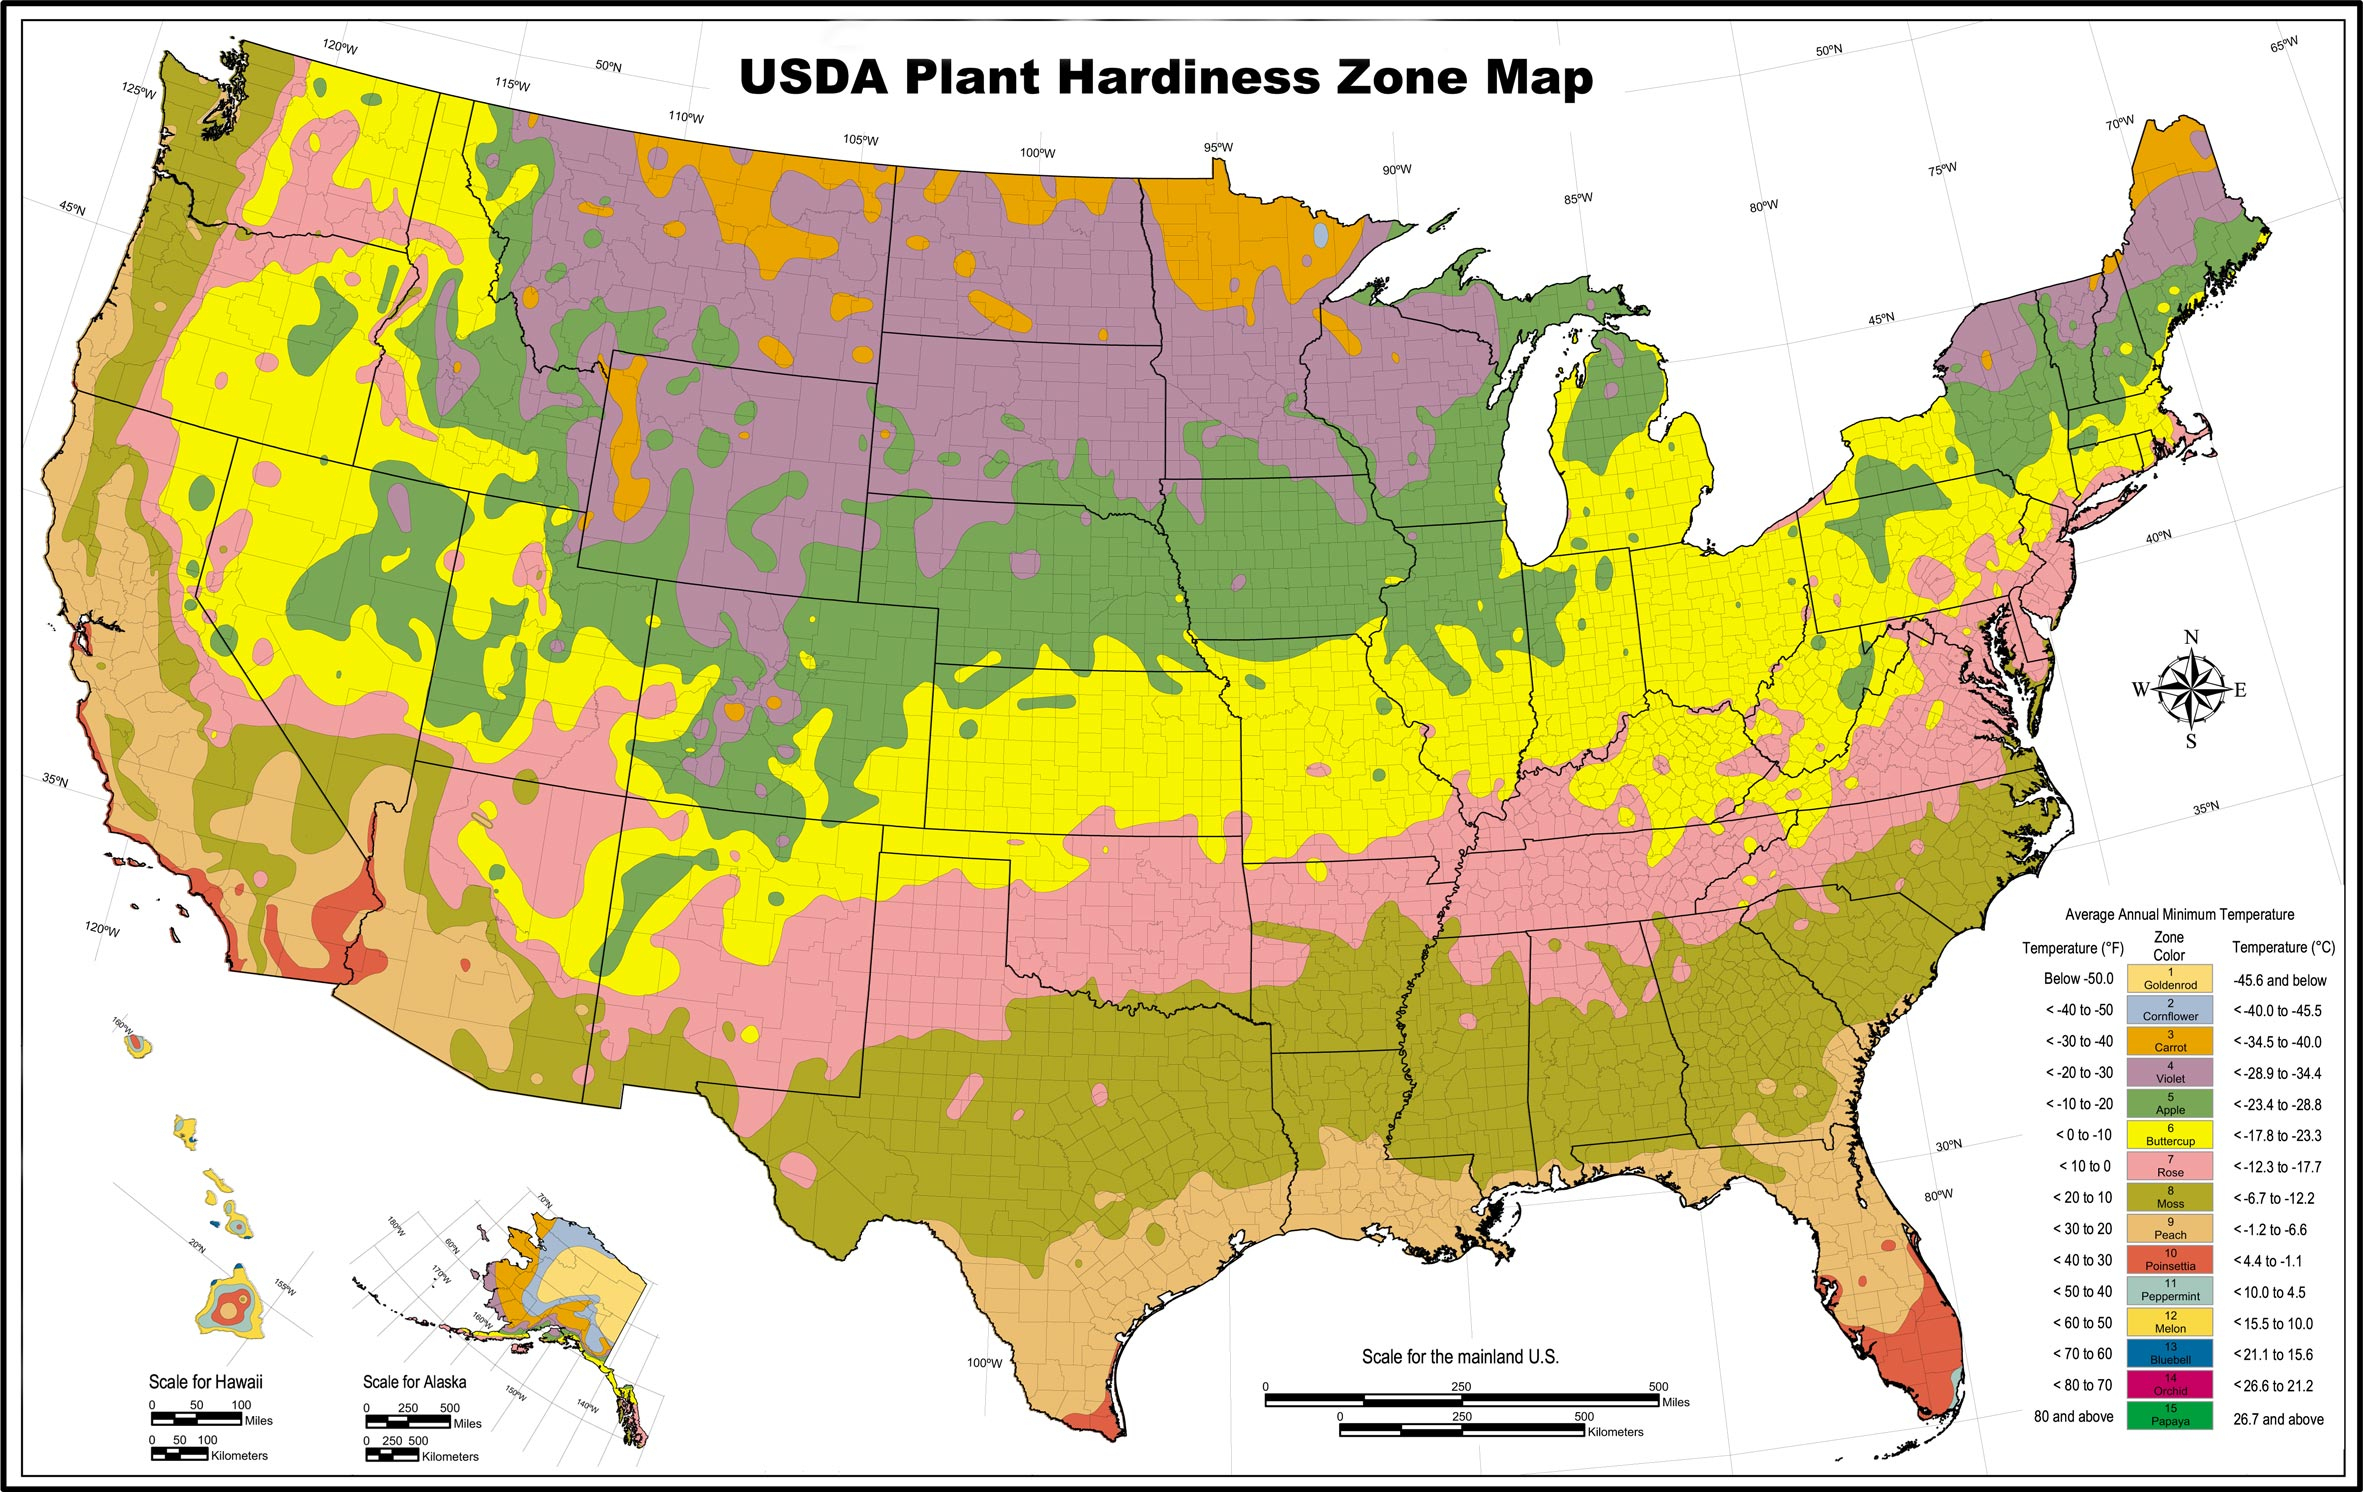 Usda Hardiness Zones Outline Map With California Climate Zones Map - Usda Hardiness Zone Map California